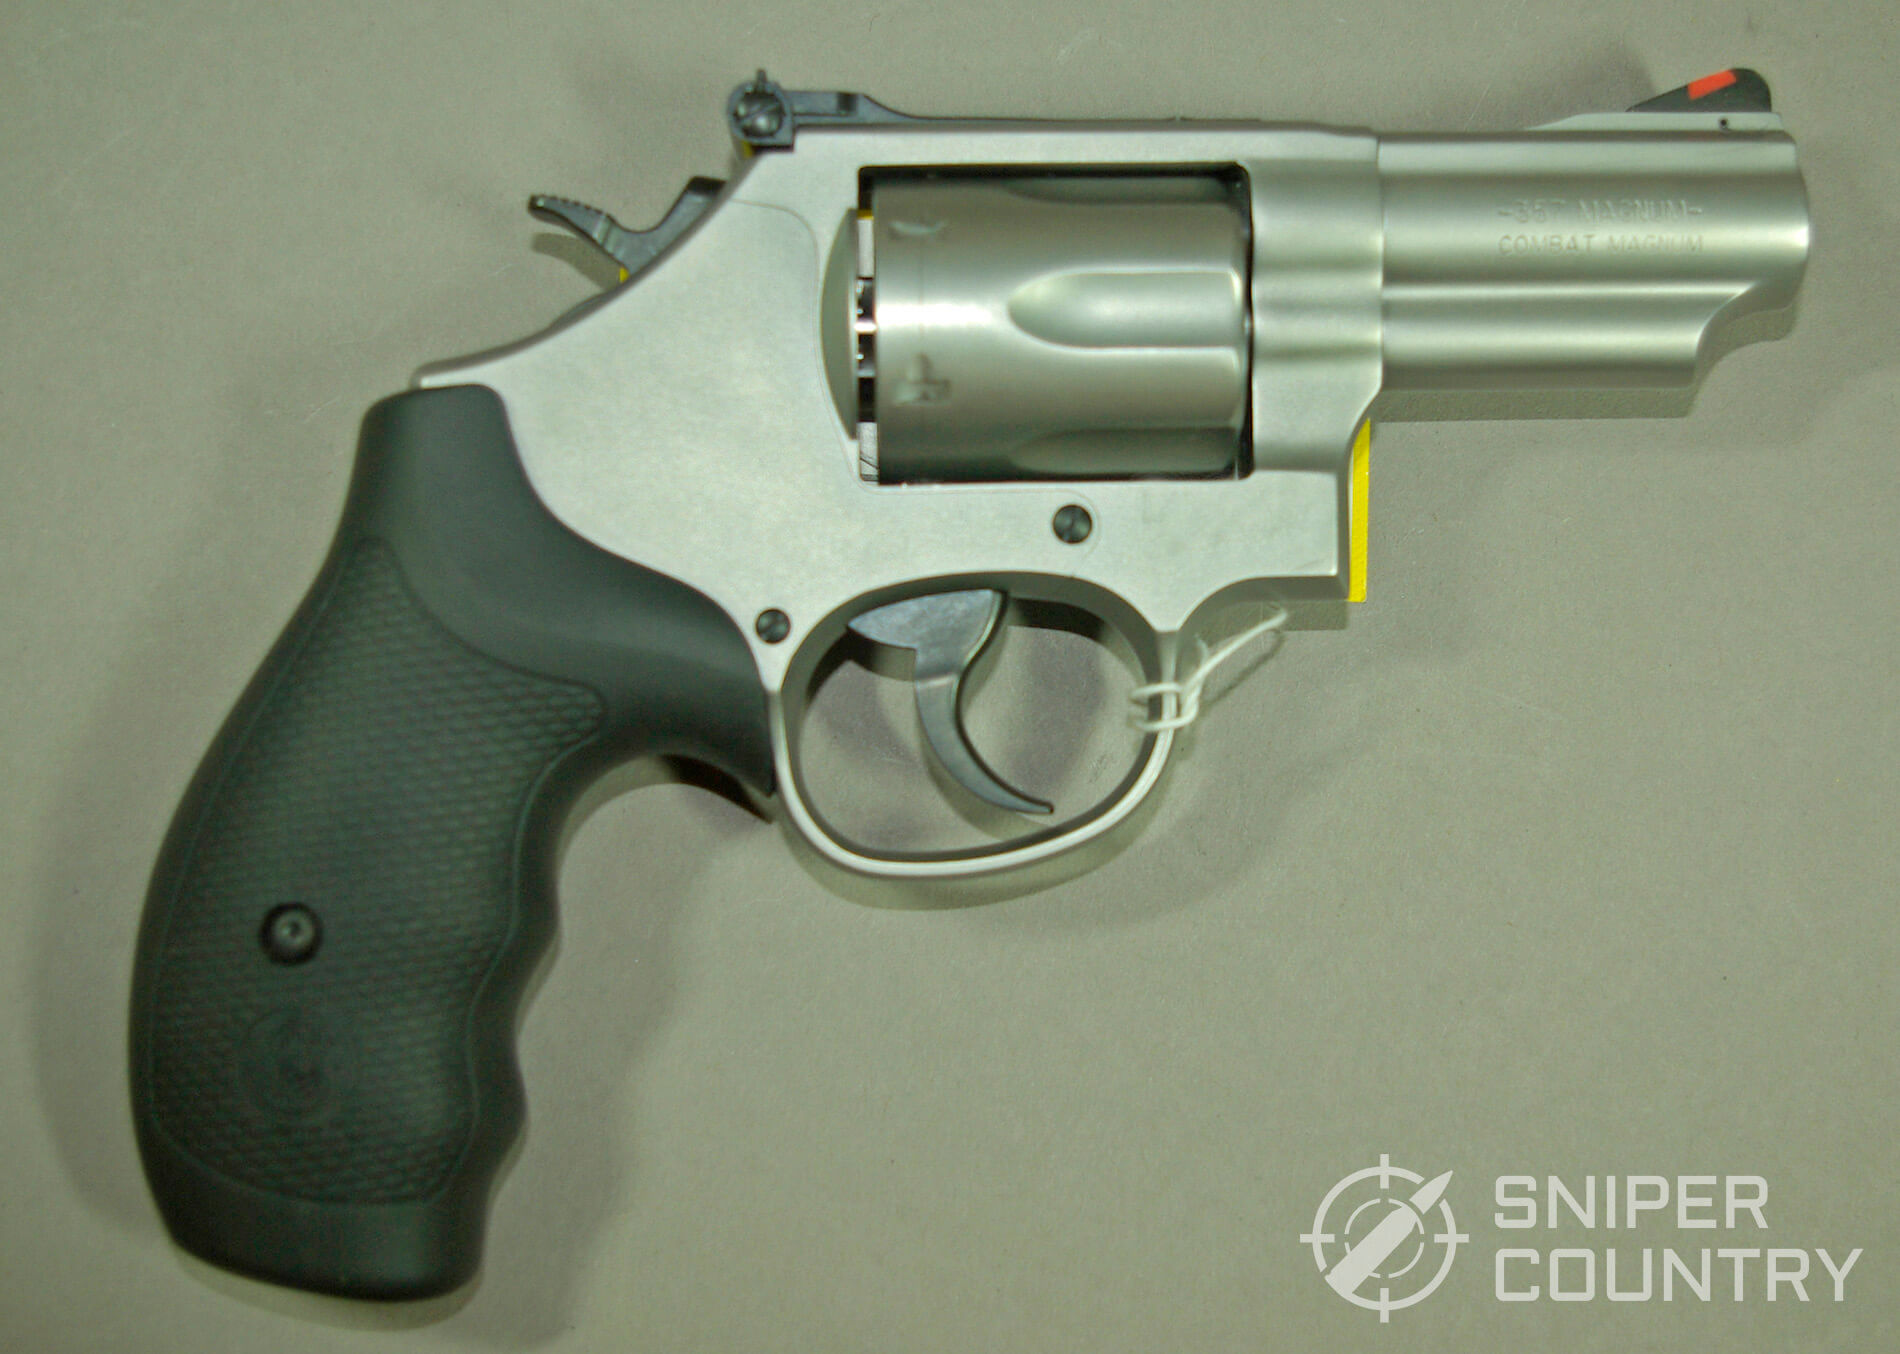 Smith & Wesson 66 2.75